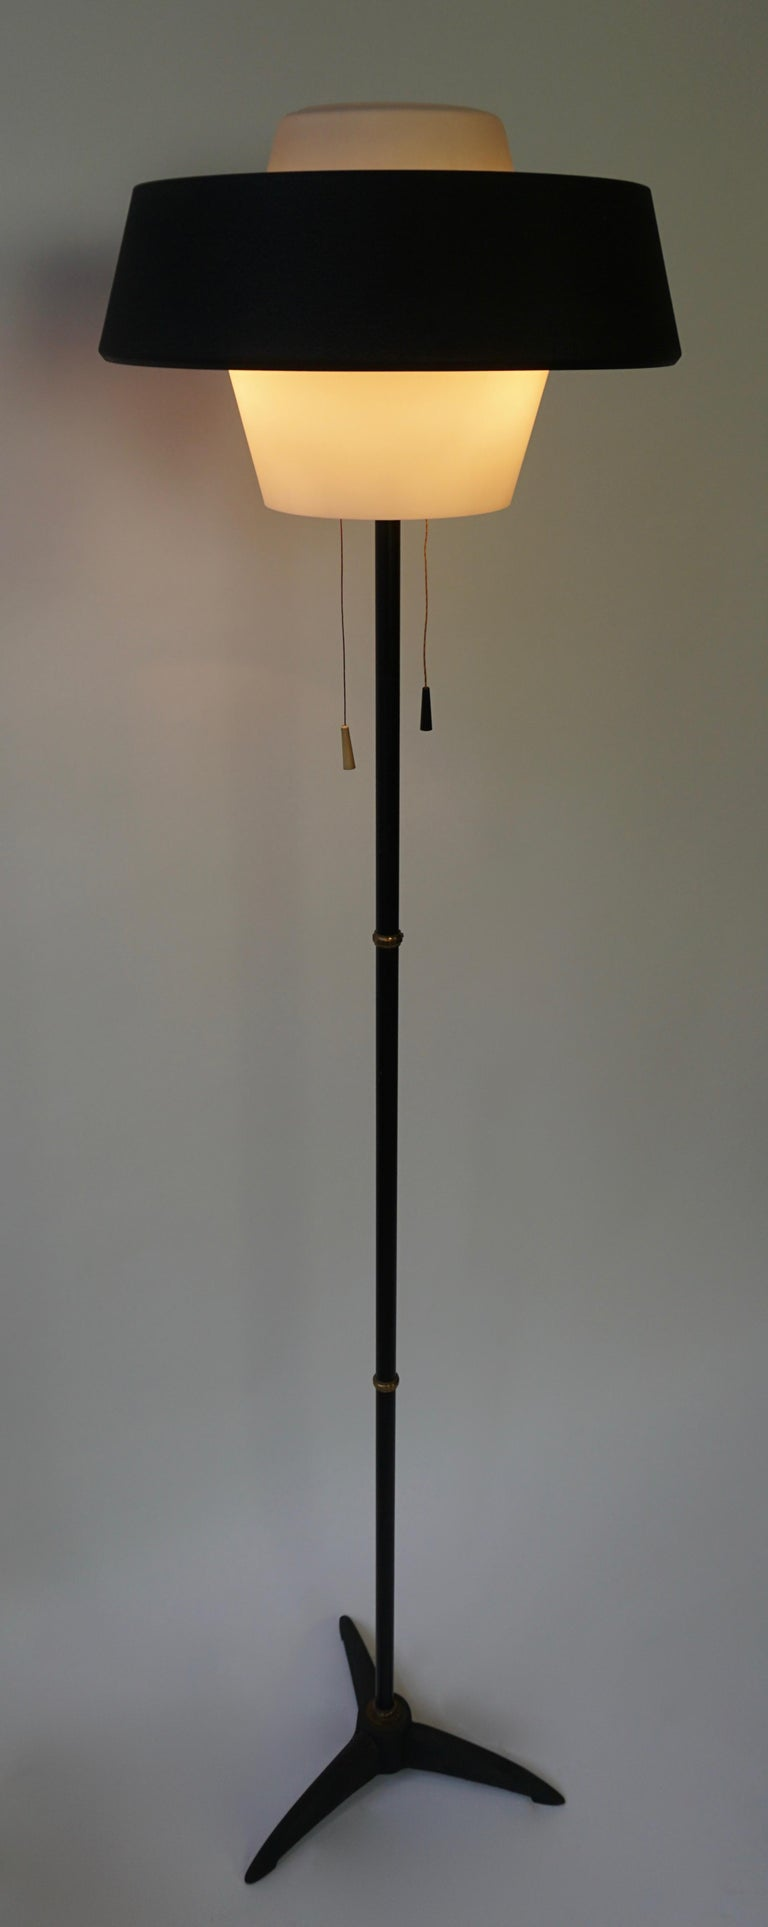 Rare Black Metal and Opaline Floor Lamp by Louis Kalff, The Netherlands 1950s In Good Condition For Sale In Antwerp, BE